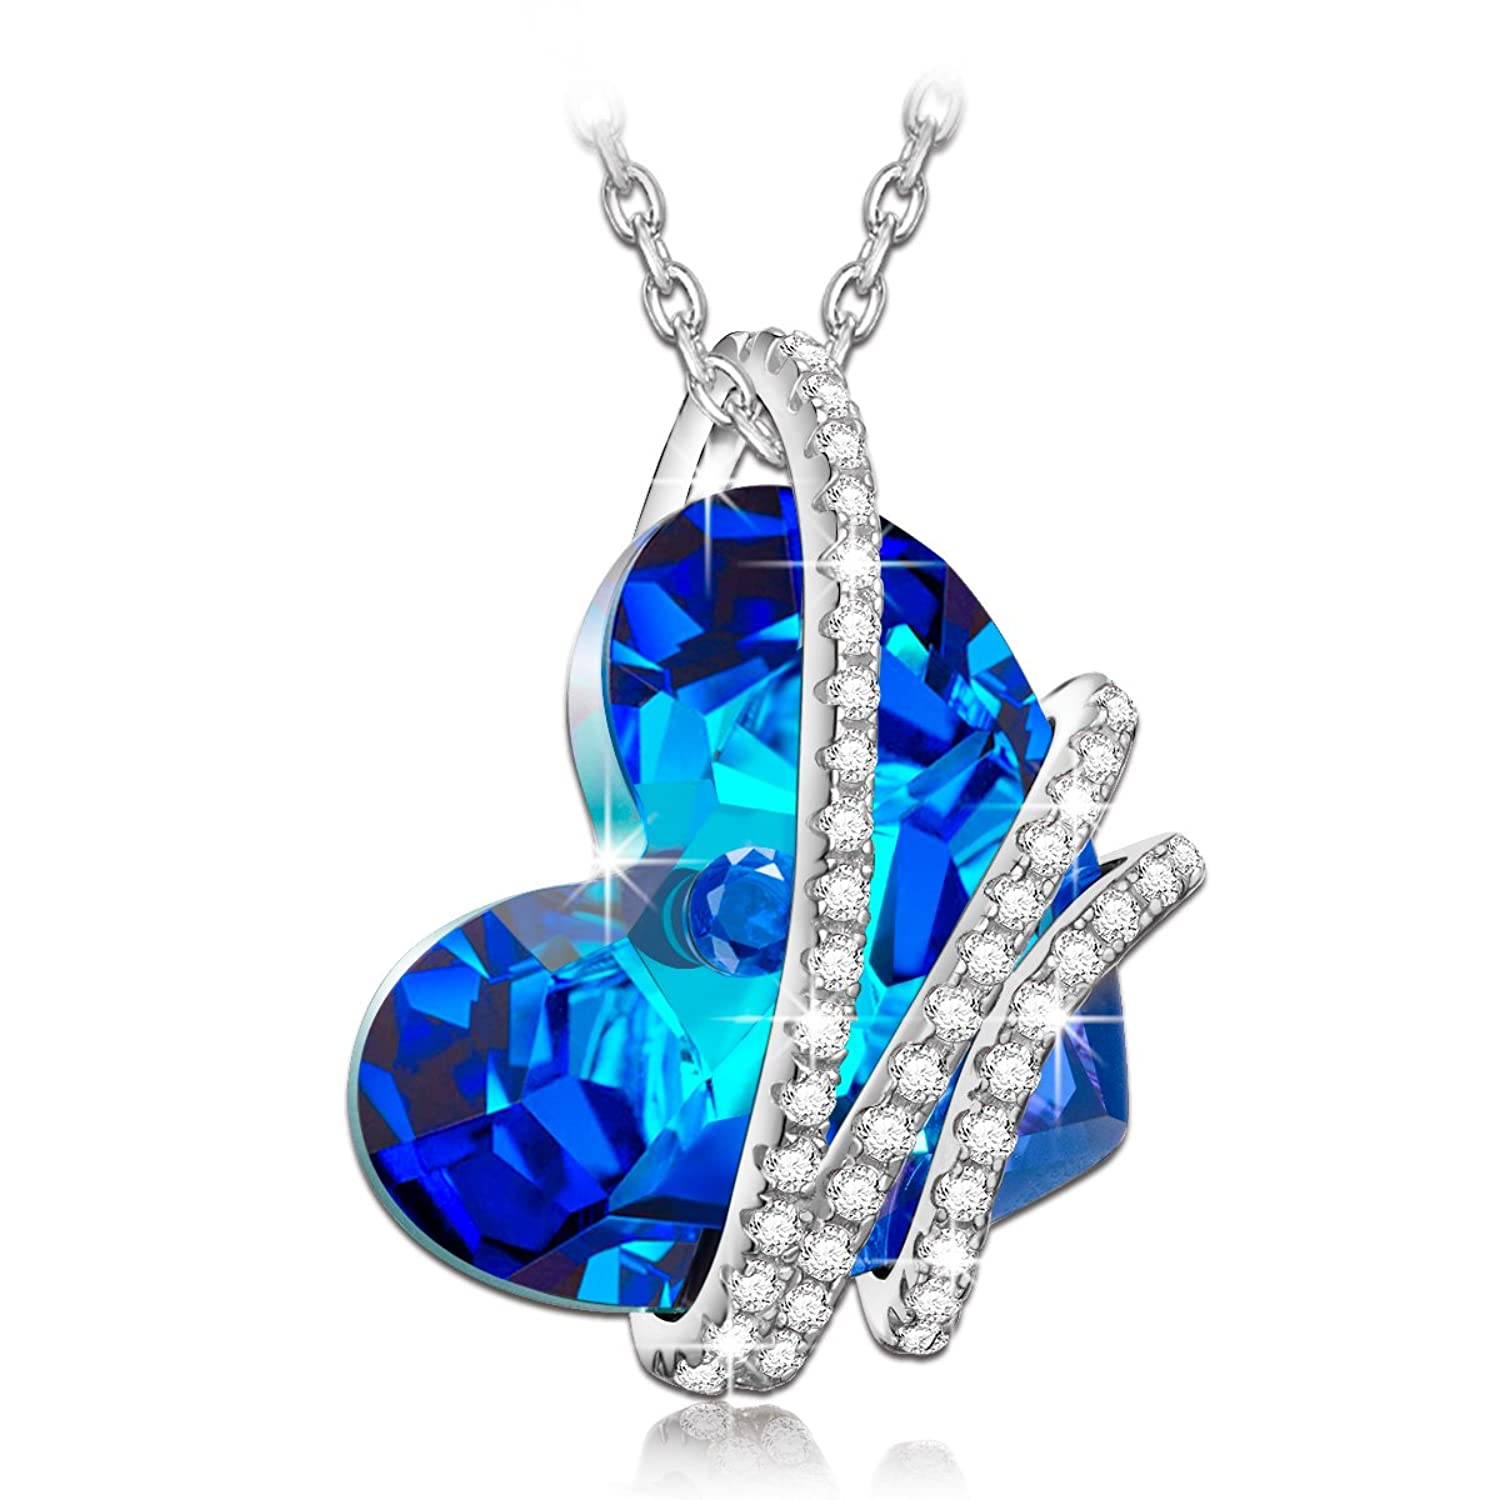 """NinaQueen """"Heart Of the Ocean"""" 925 Sterling Silver Blue Heart Pendant Necklace Made with Swarovski Crystals"""